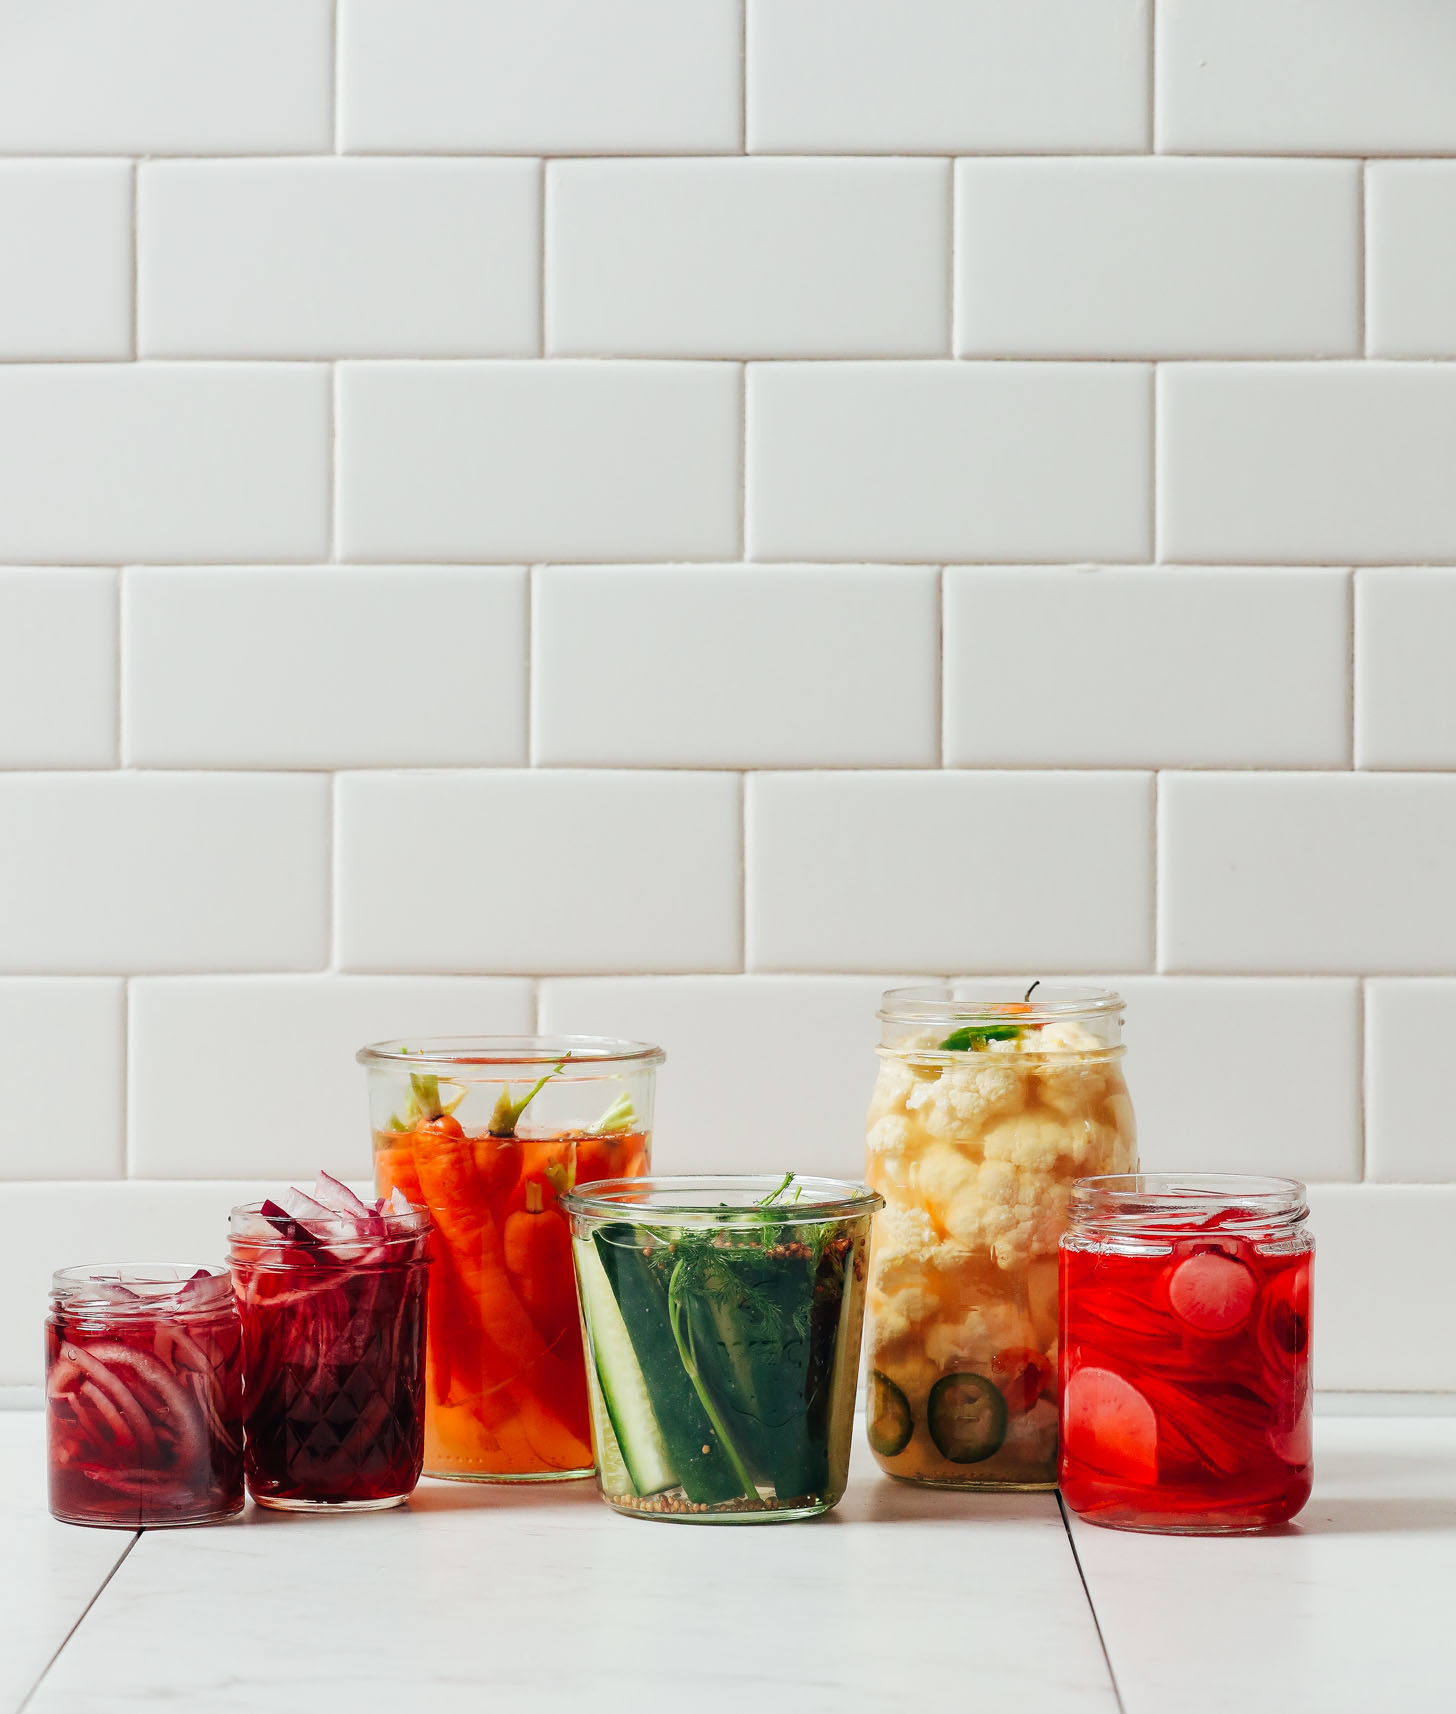 Jars of quickly pickled vegetables, including onions, carrots, cucumbers, cauliflower, and radishes